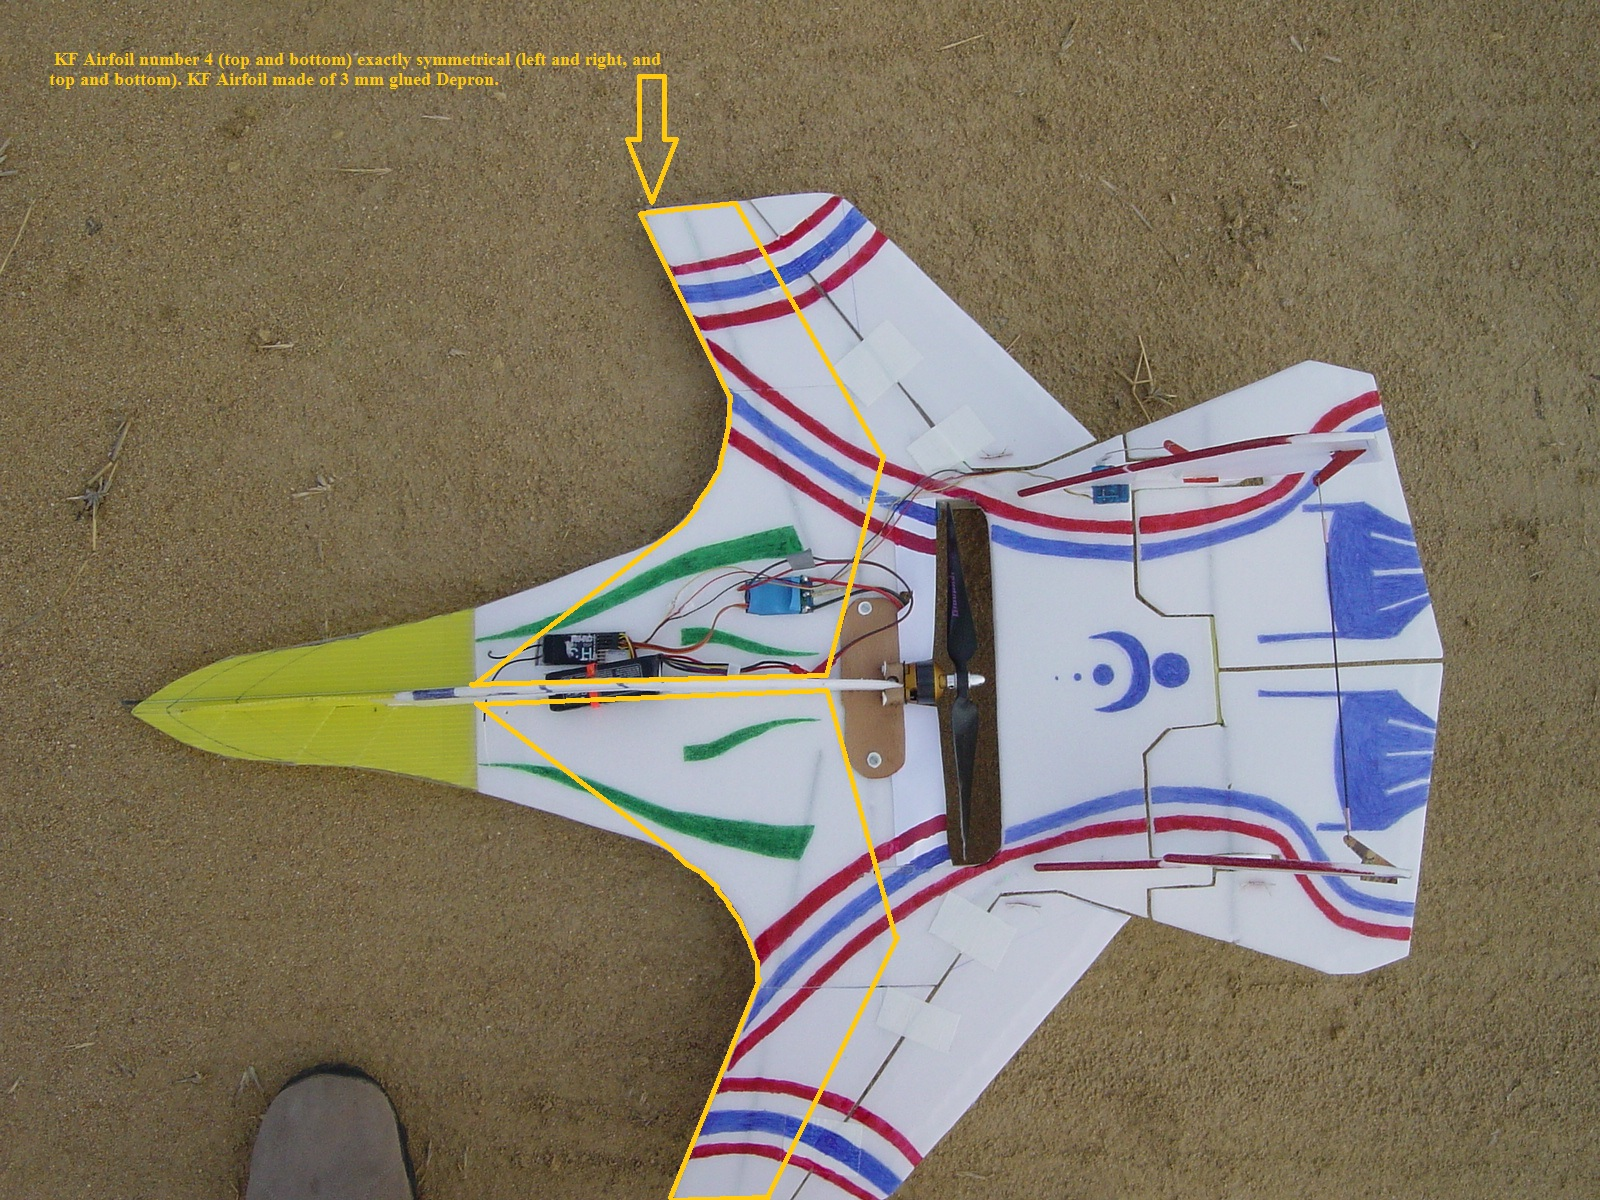 Click image for larger version  Name:SU 47 V2 JB KF airfoil.jpg Views:18 Size:801.3 KB ID:1959027